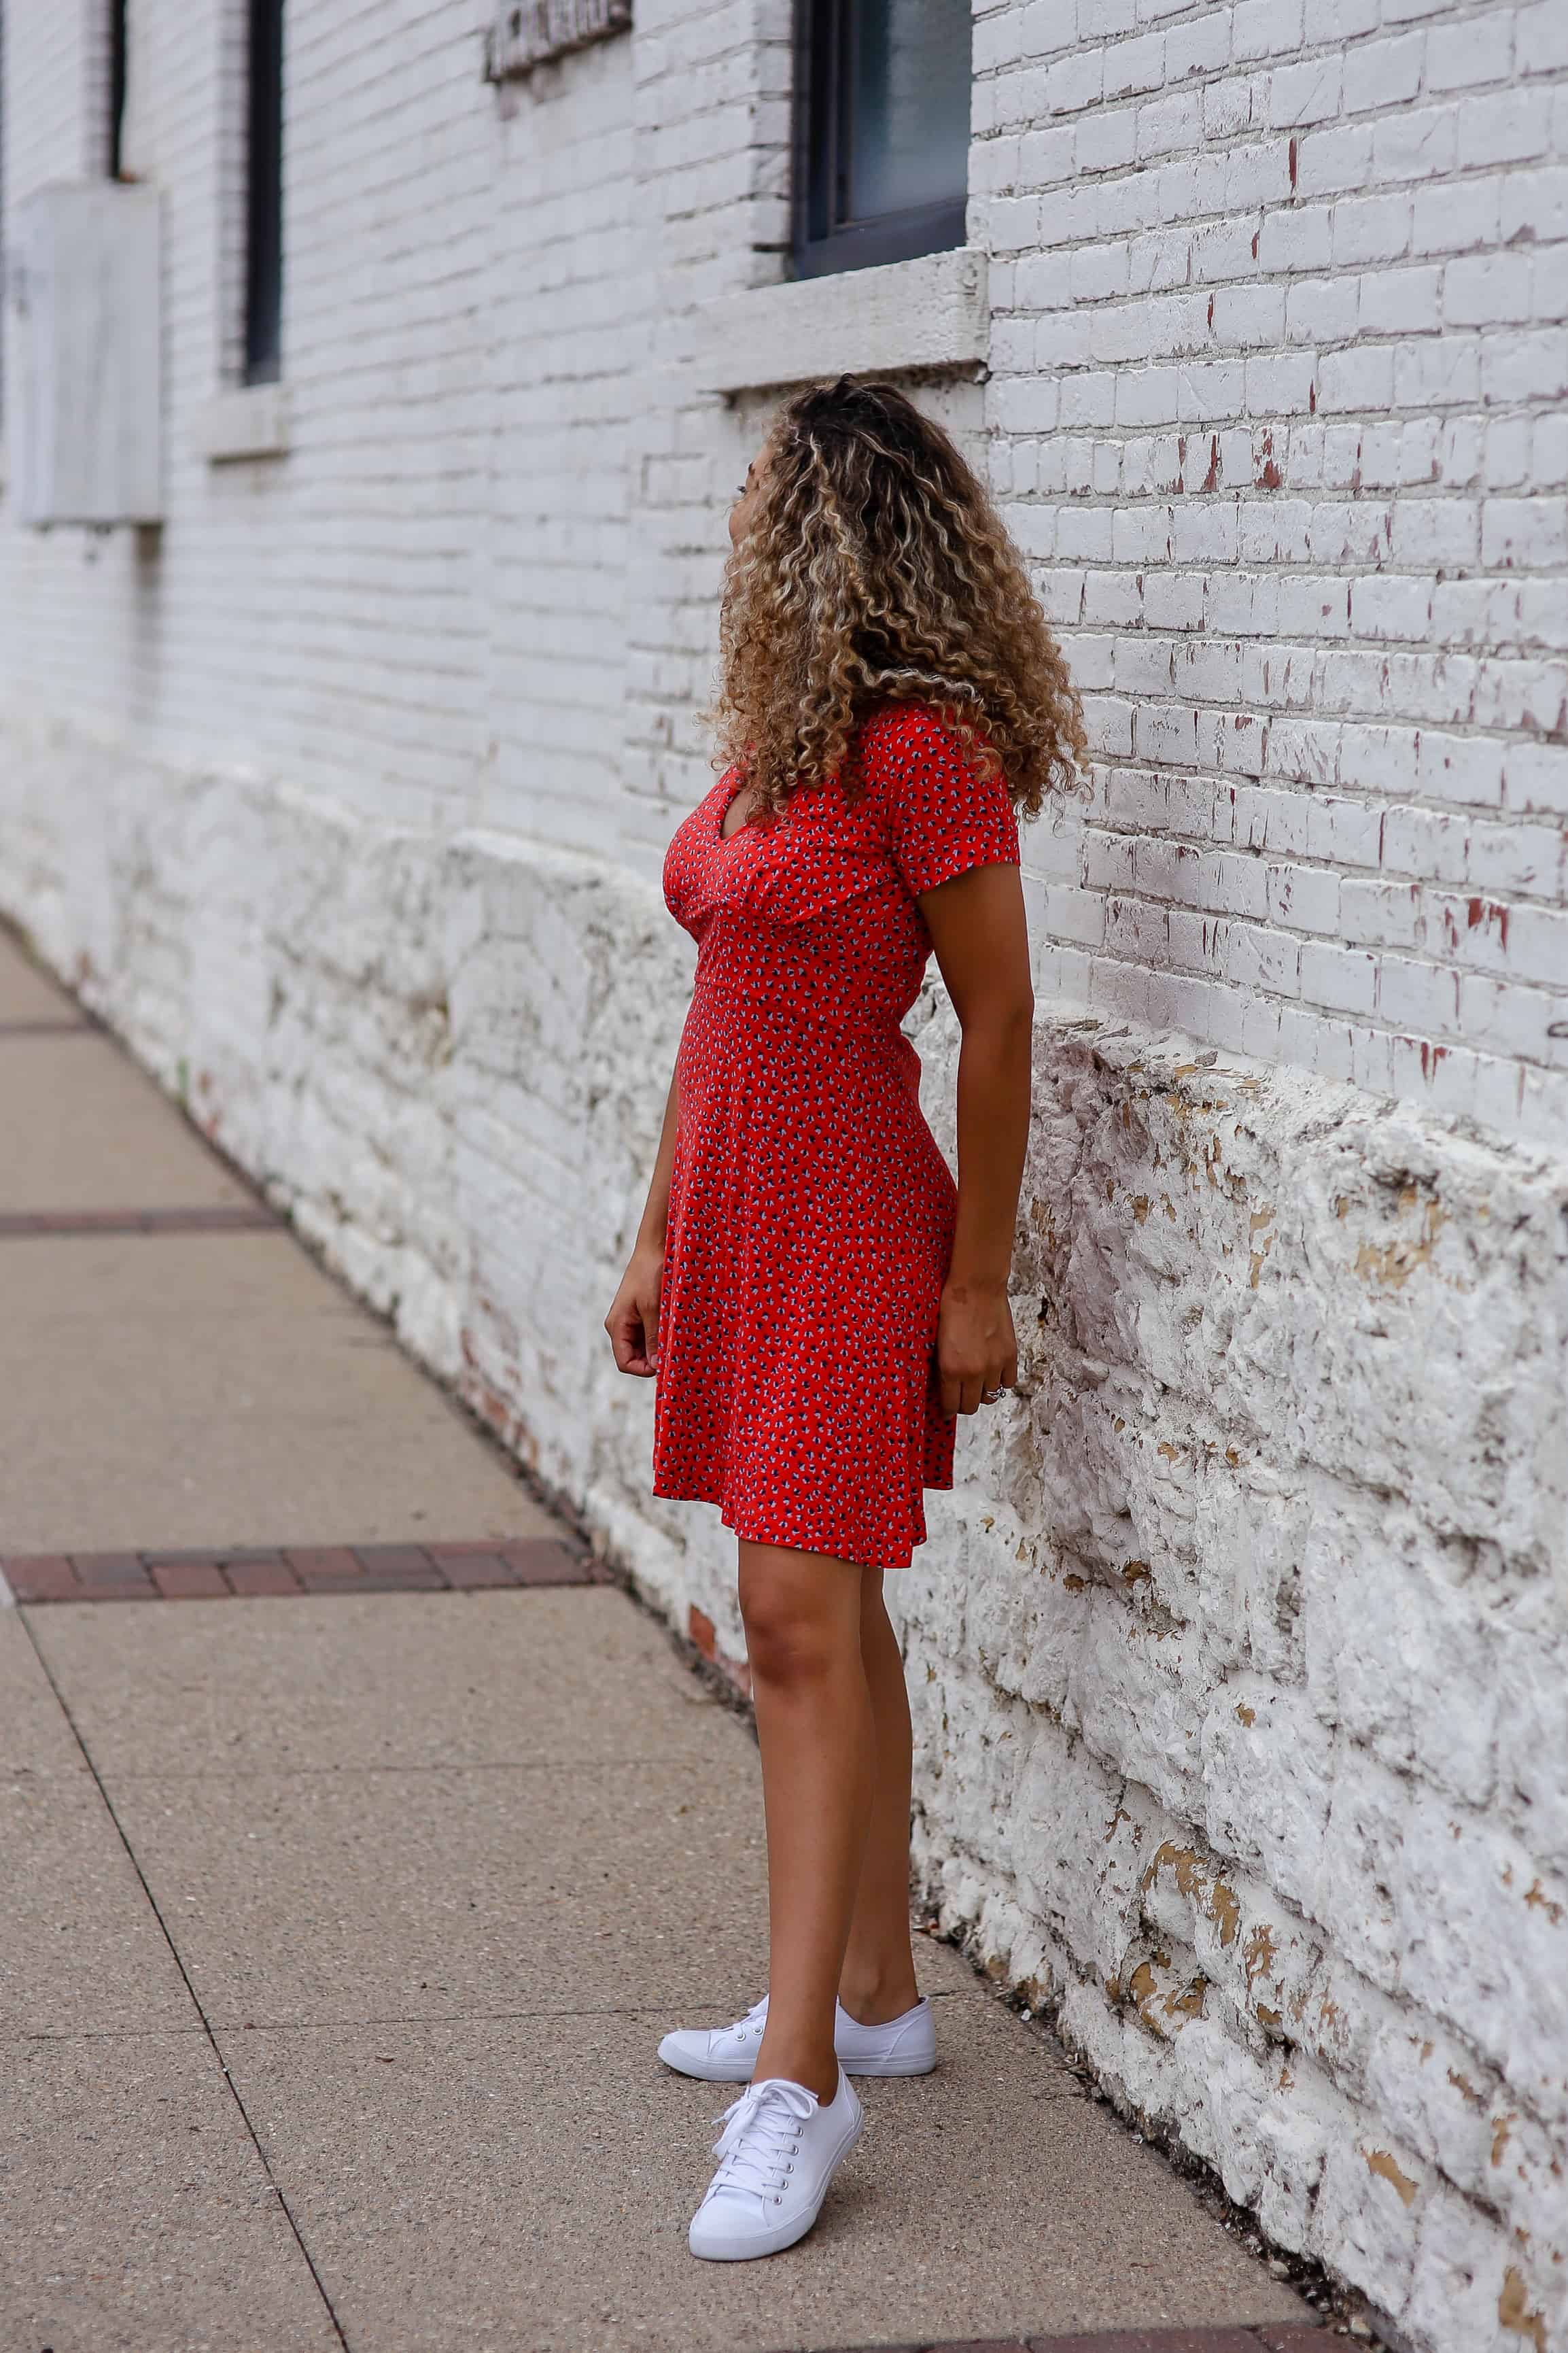 red dress and sneakers